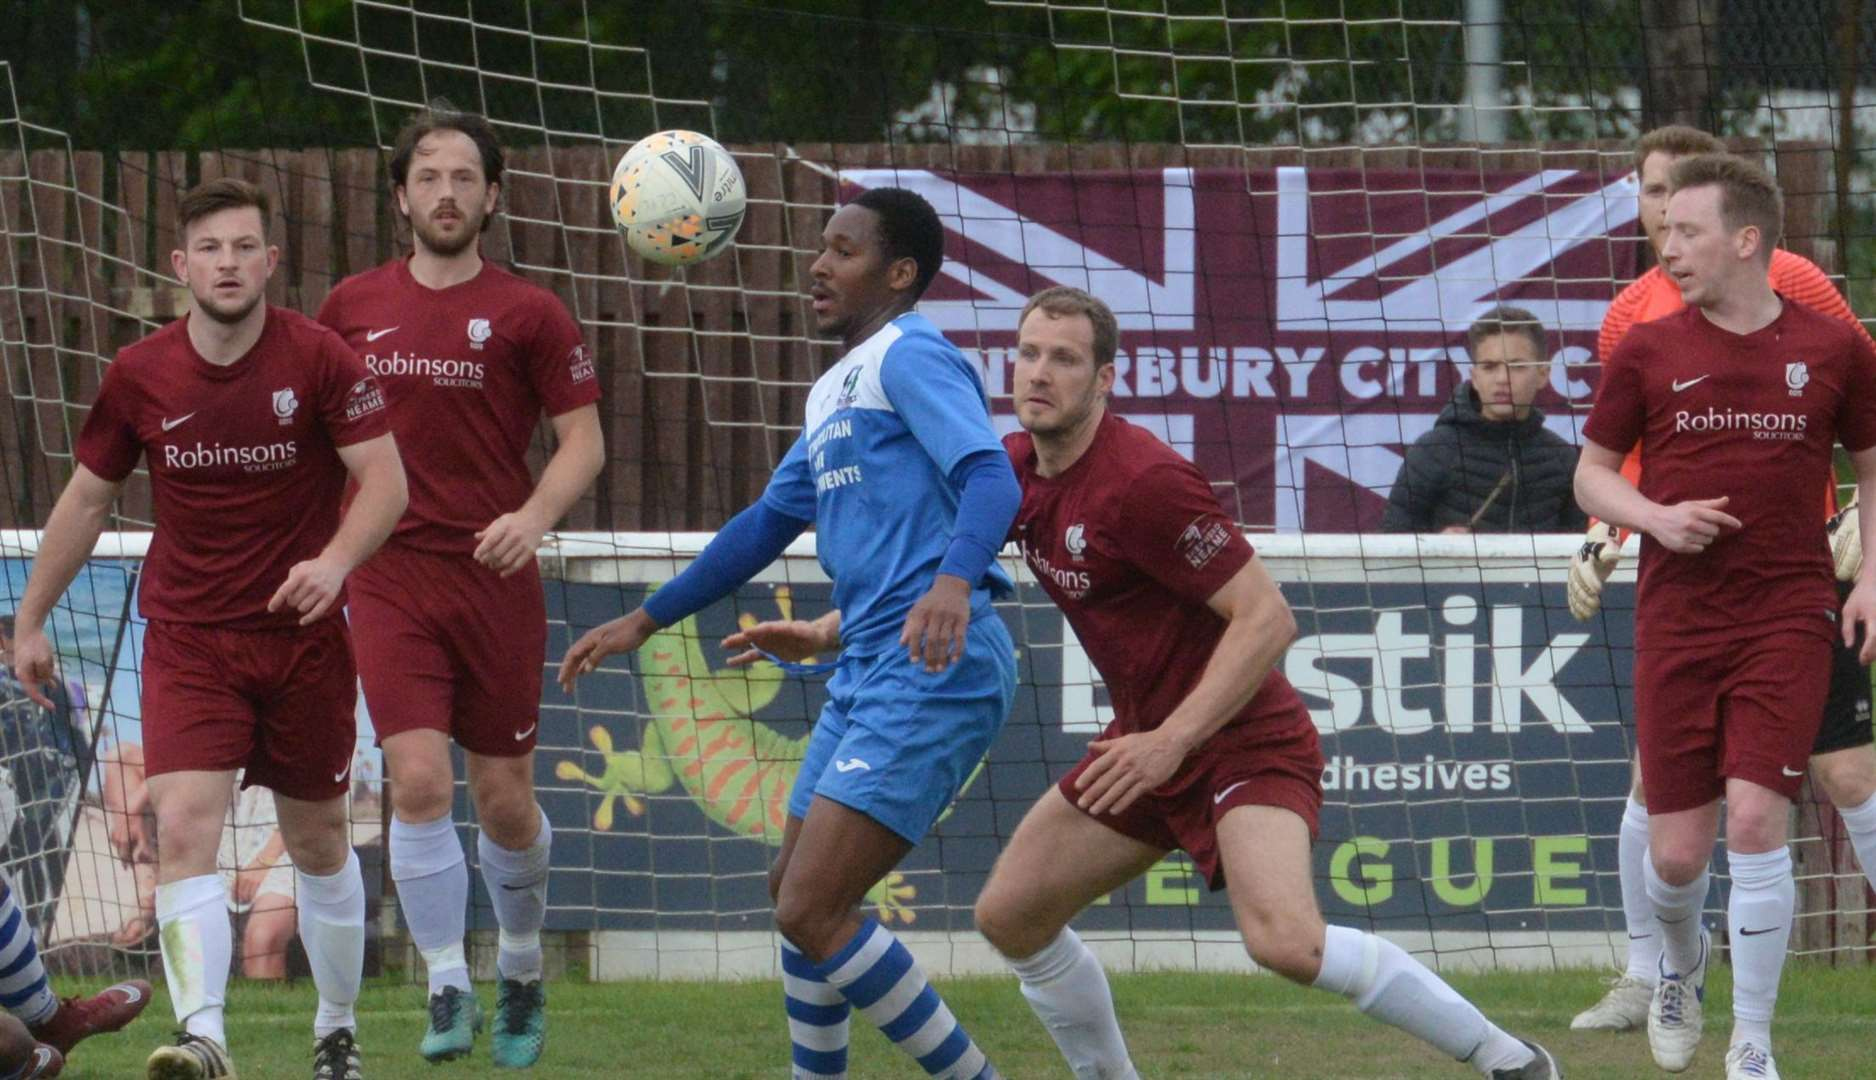 Canterbury City take on Cray Valley at Salters Lane, Faversham on Saturday. Picture: Chris Davey